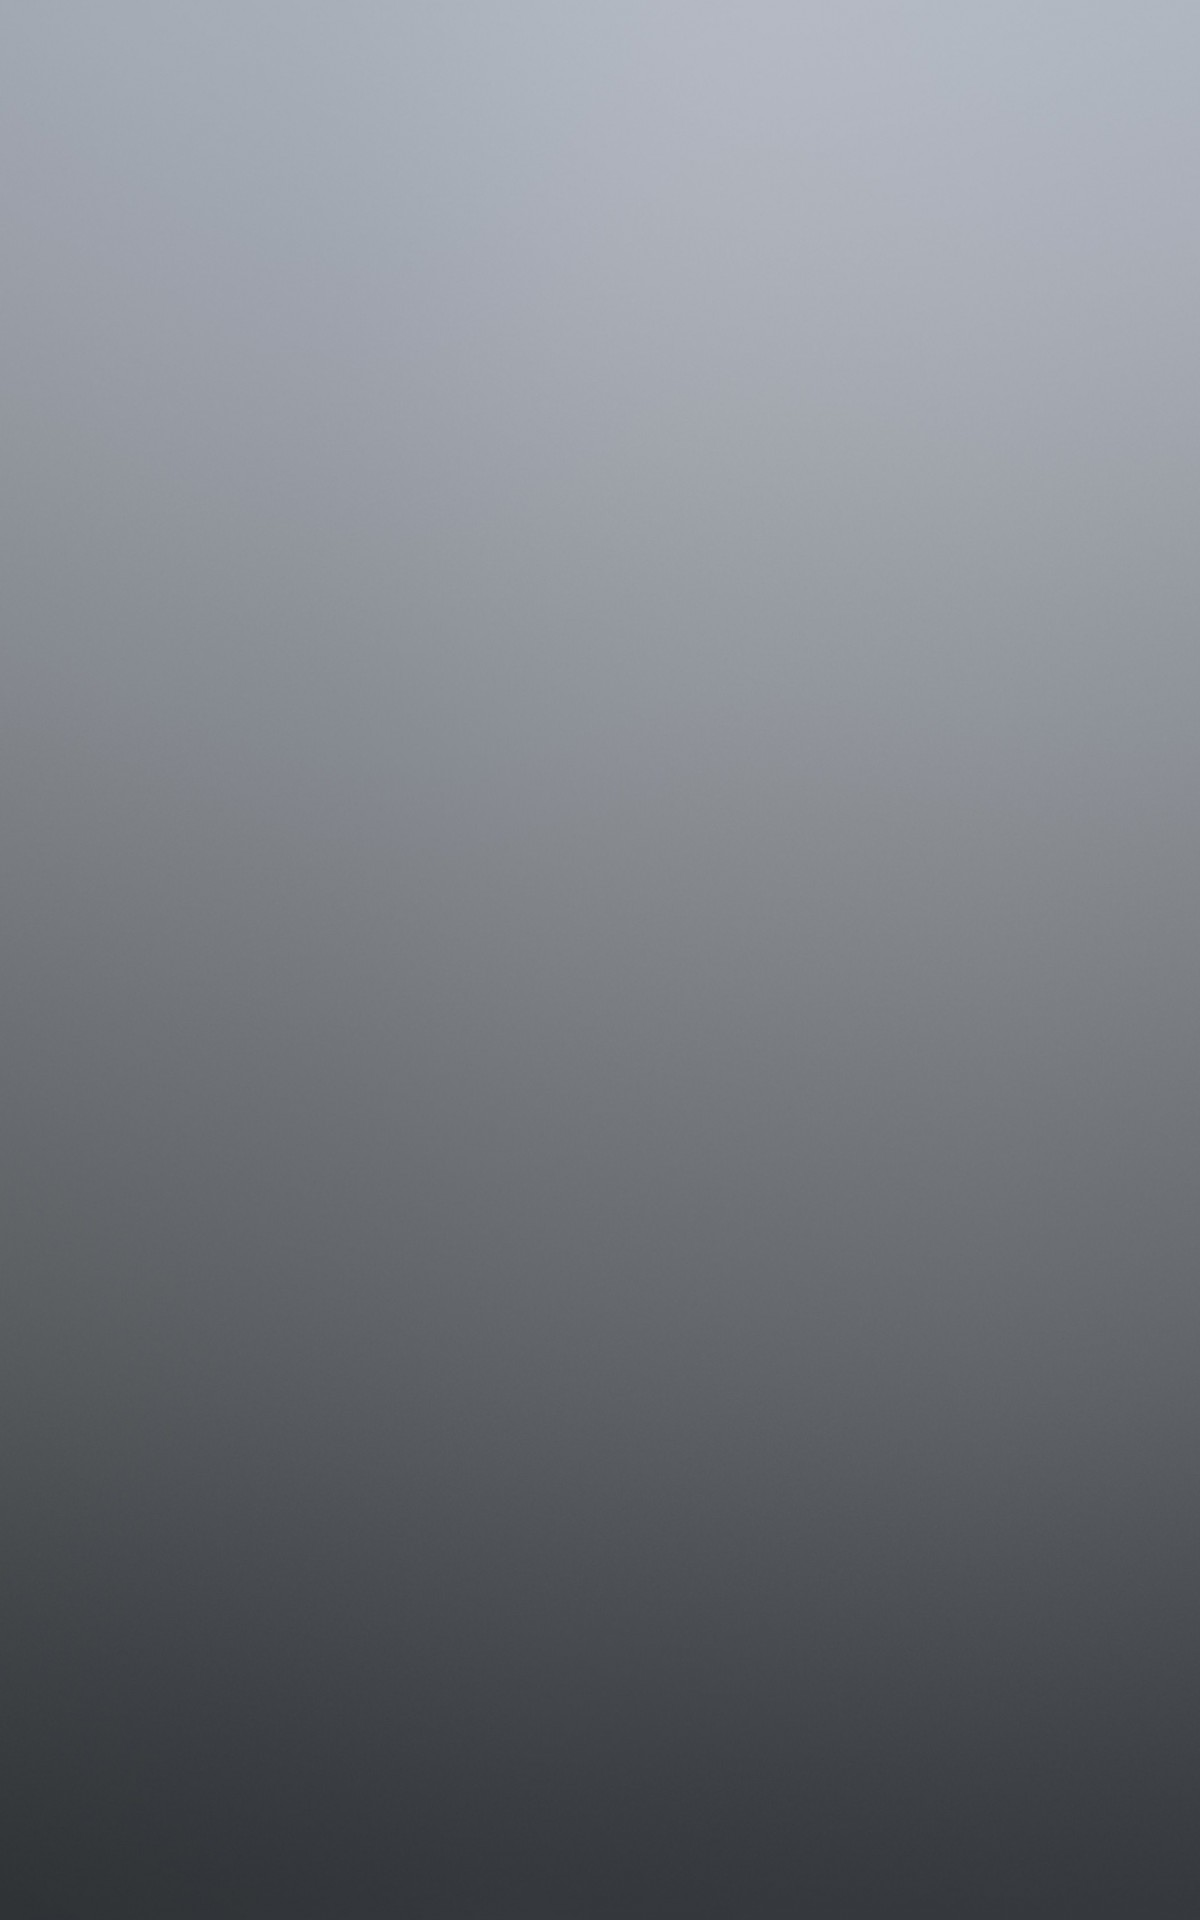 Gradient Grey Wallpaper for Amazon Kindle Fire HDX